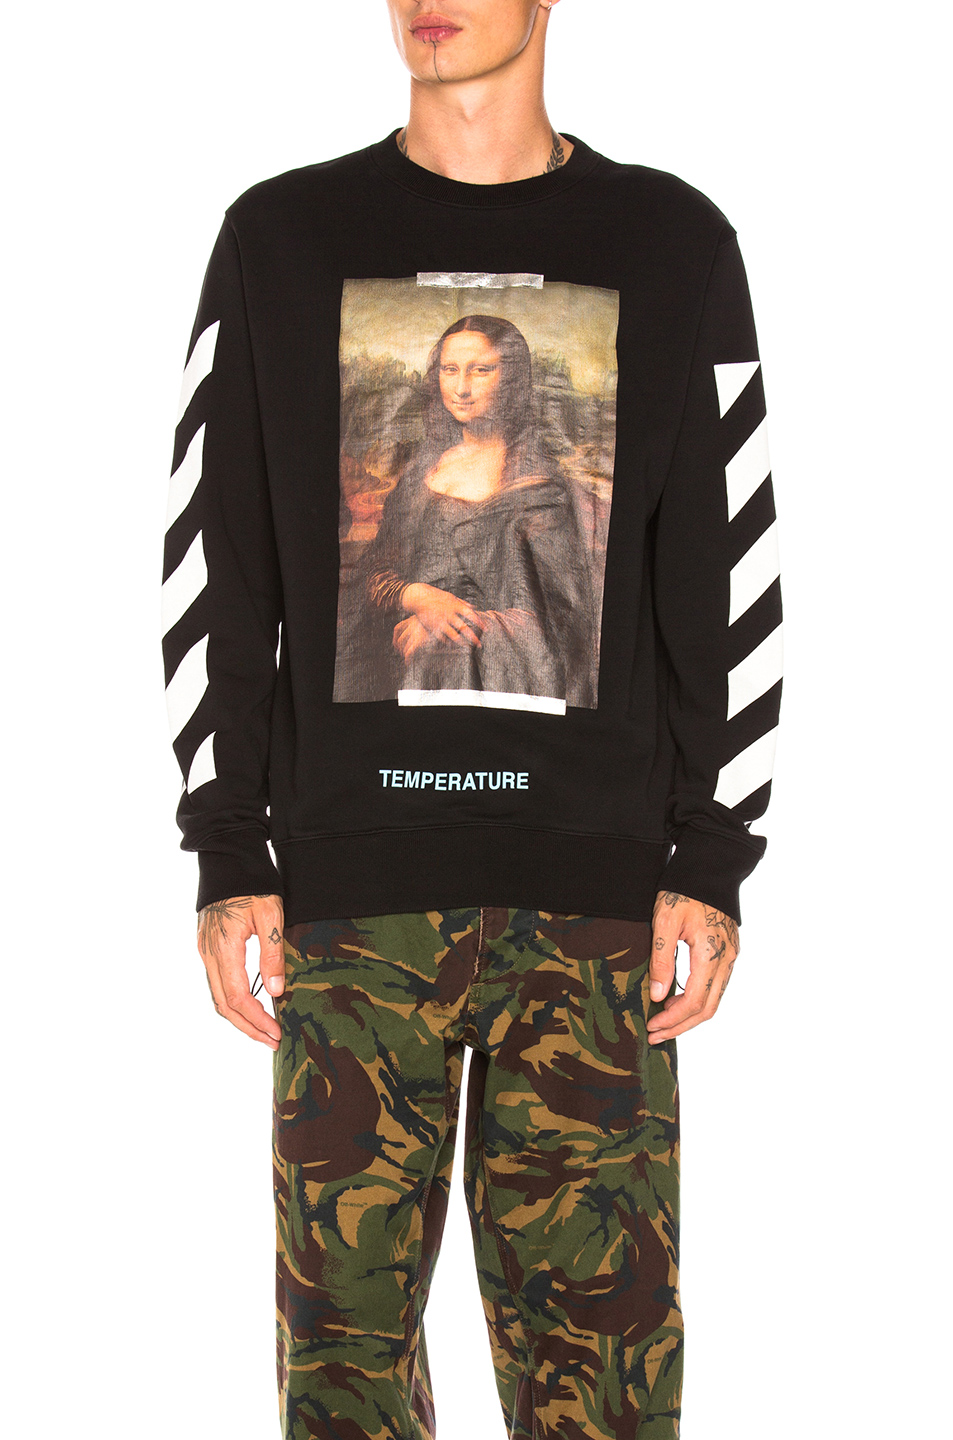 c158d68bbd3 Jual OFF-WHITE Mona Lisa Crewneck - 100% Original